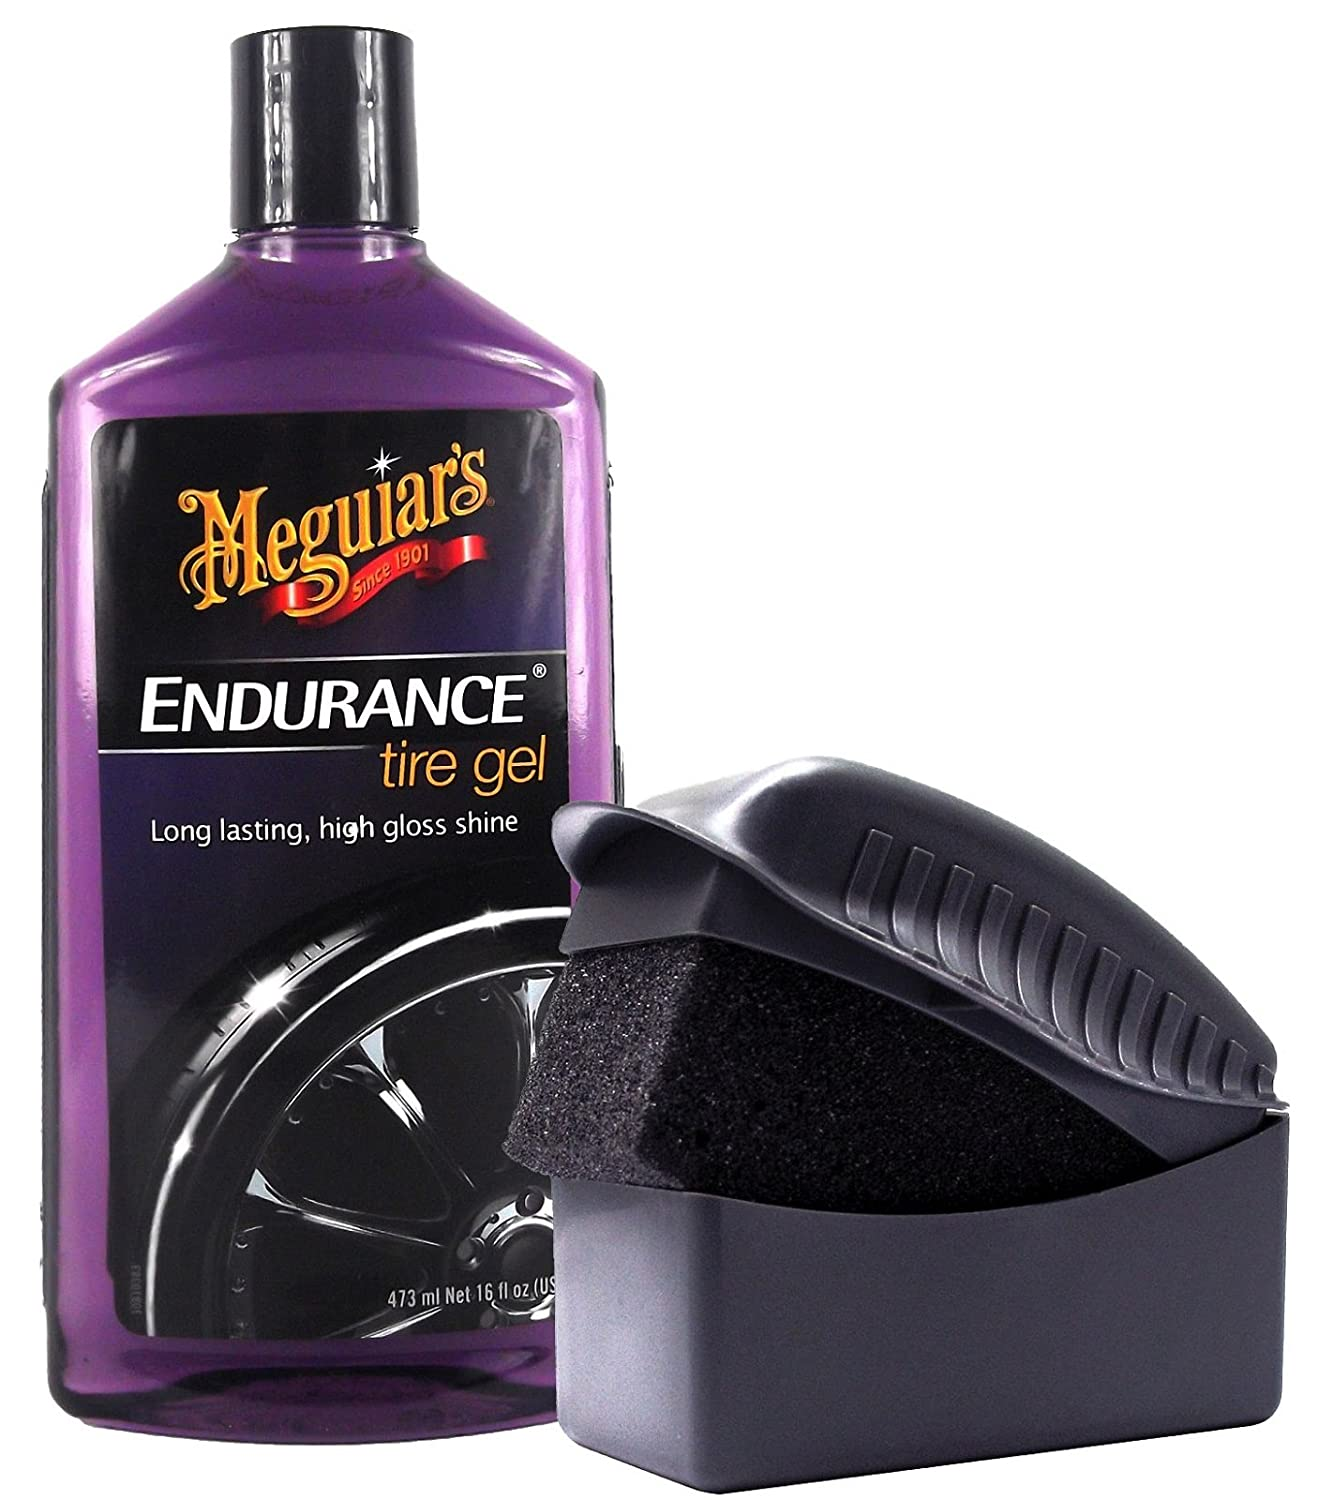 Meguiar's Meguiars Endurance High Gloss Tyre Shine Tyre Shine Gel Tyre Dressing Tyre Care 473  ml & Sponge Application Sponge MEGUIAR' S